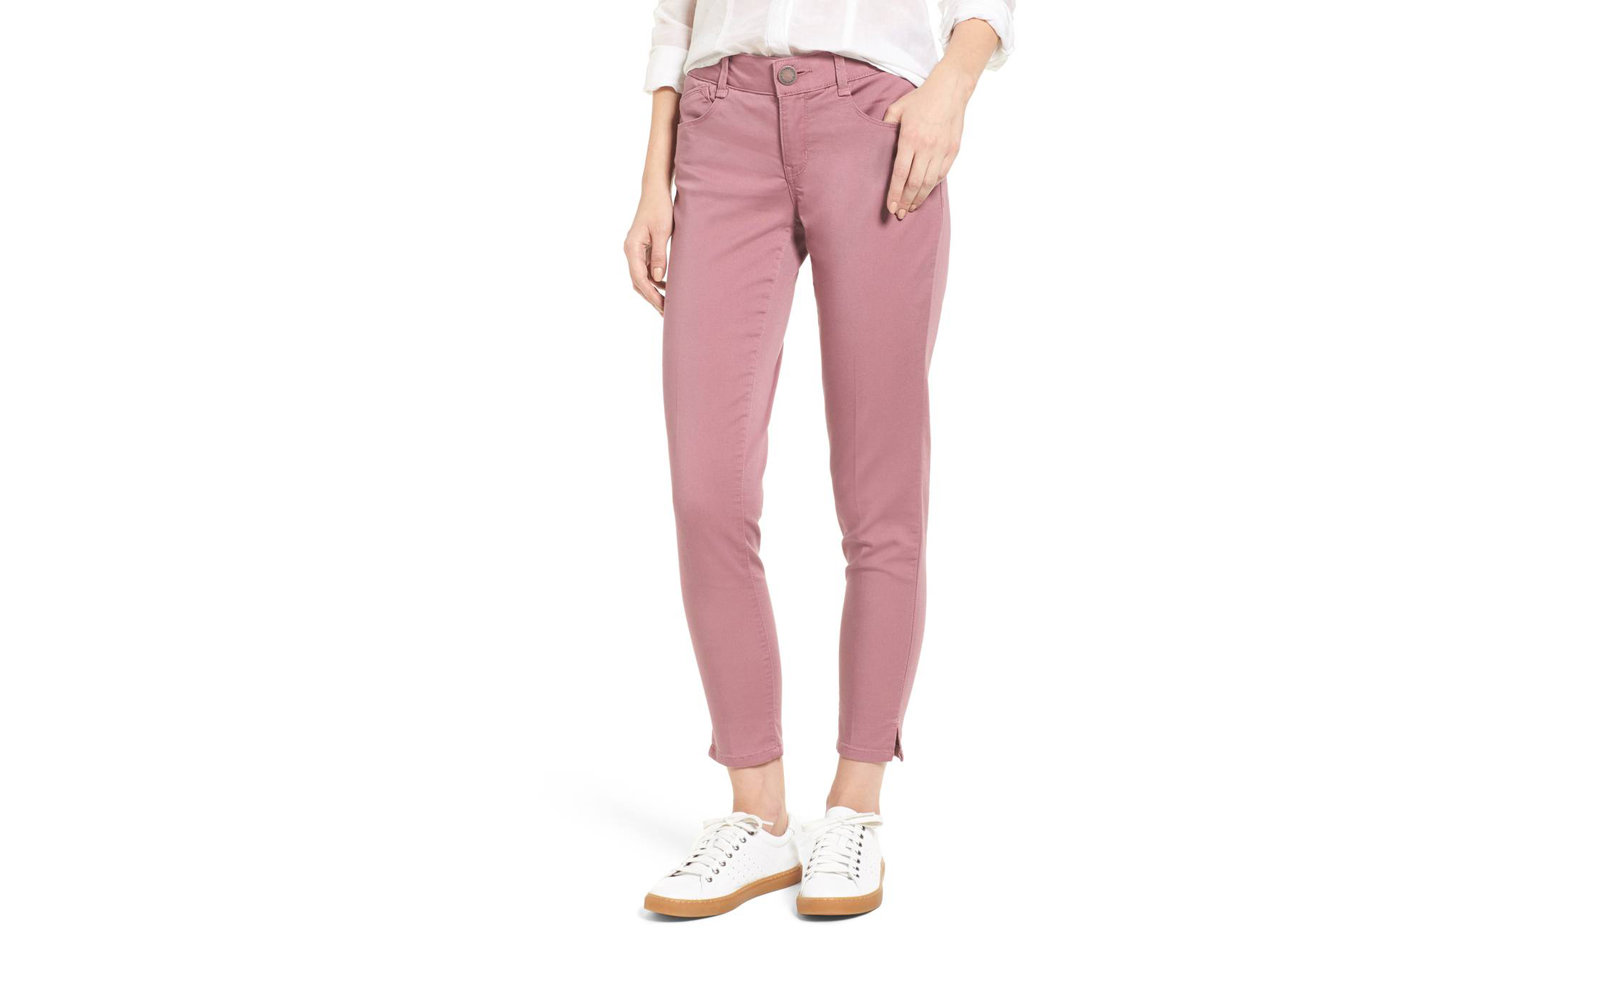 Wit & Wisdom Ab-solution Stretch Twill Skinny Pants in Wistful Mauve